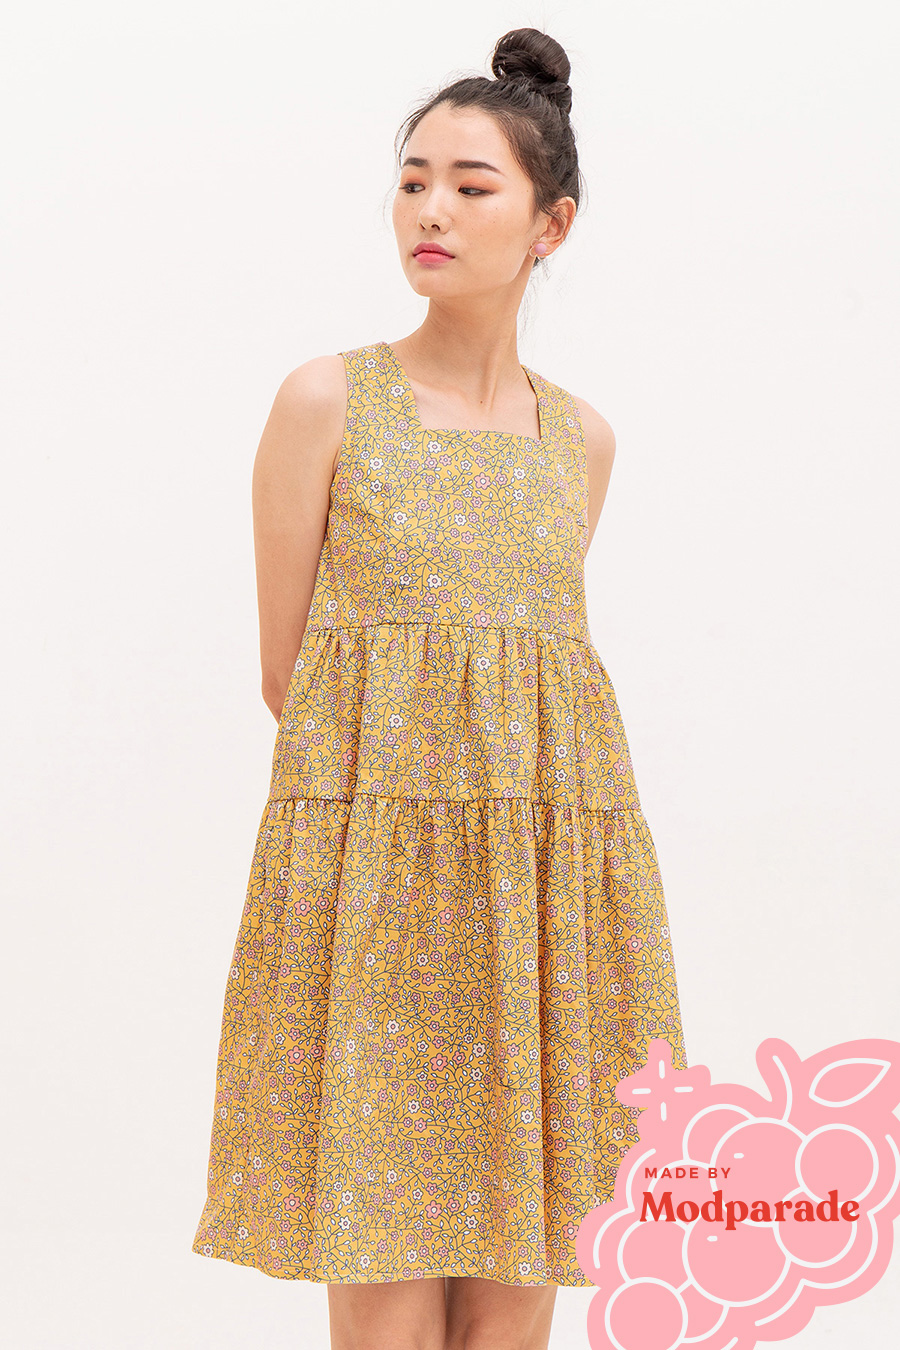 CALLADILLY DRESS - MARIGOLD [BY MODPARADE]